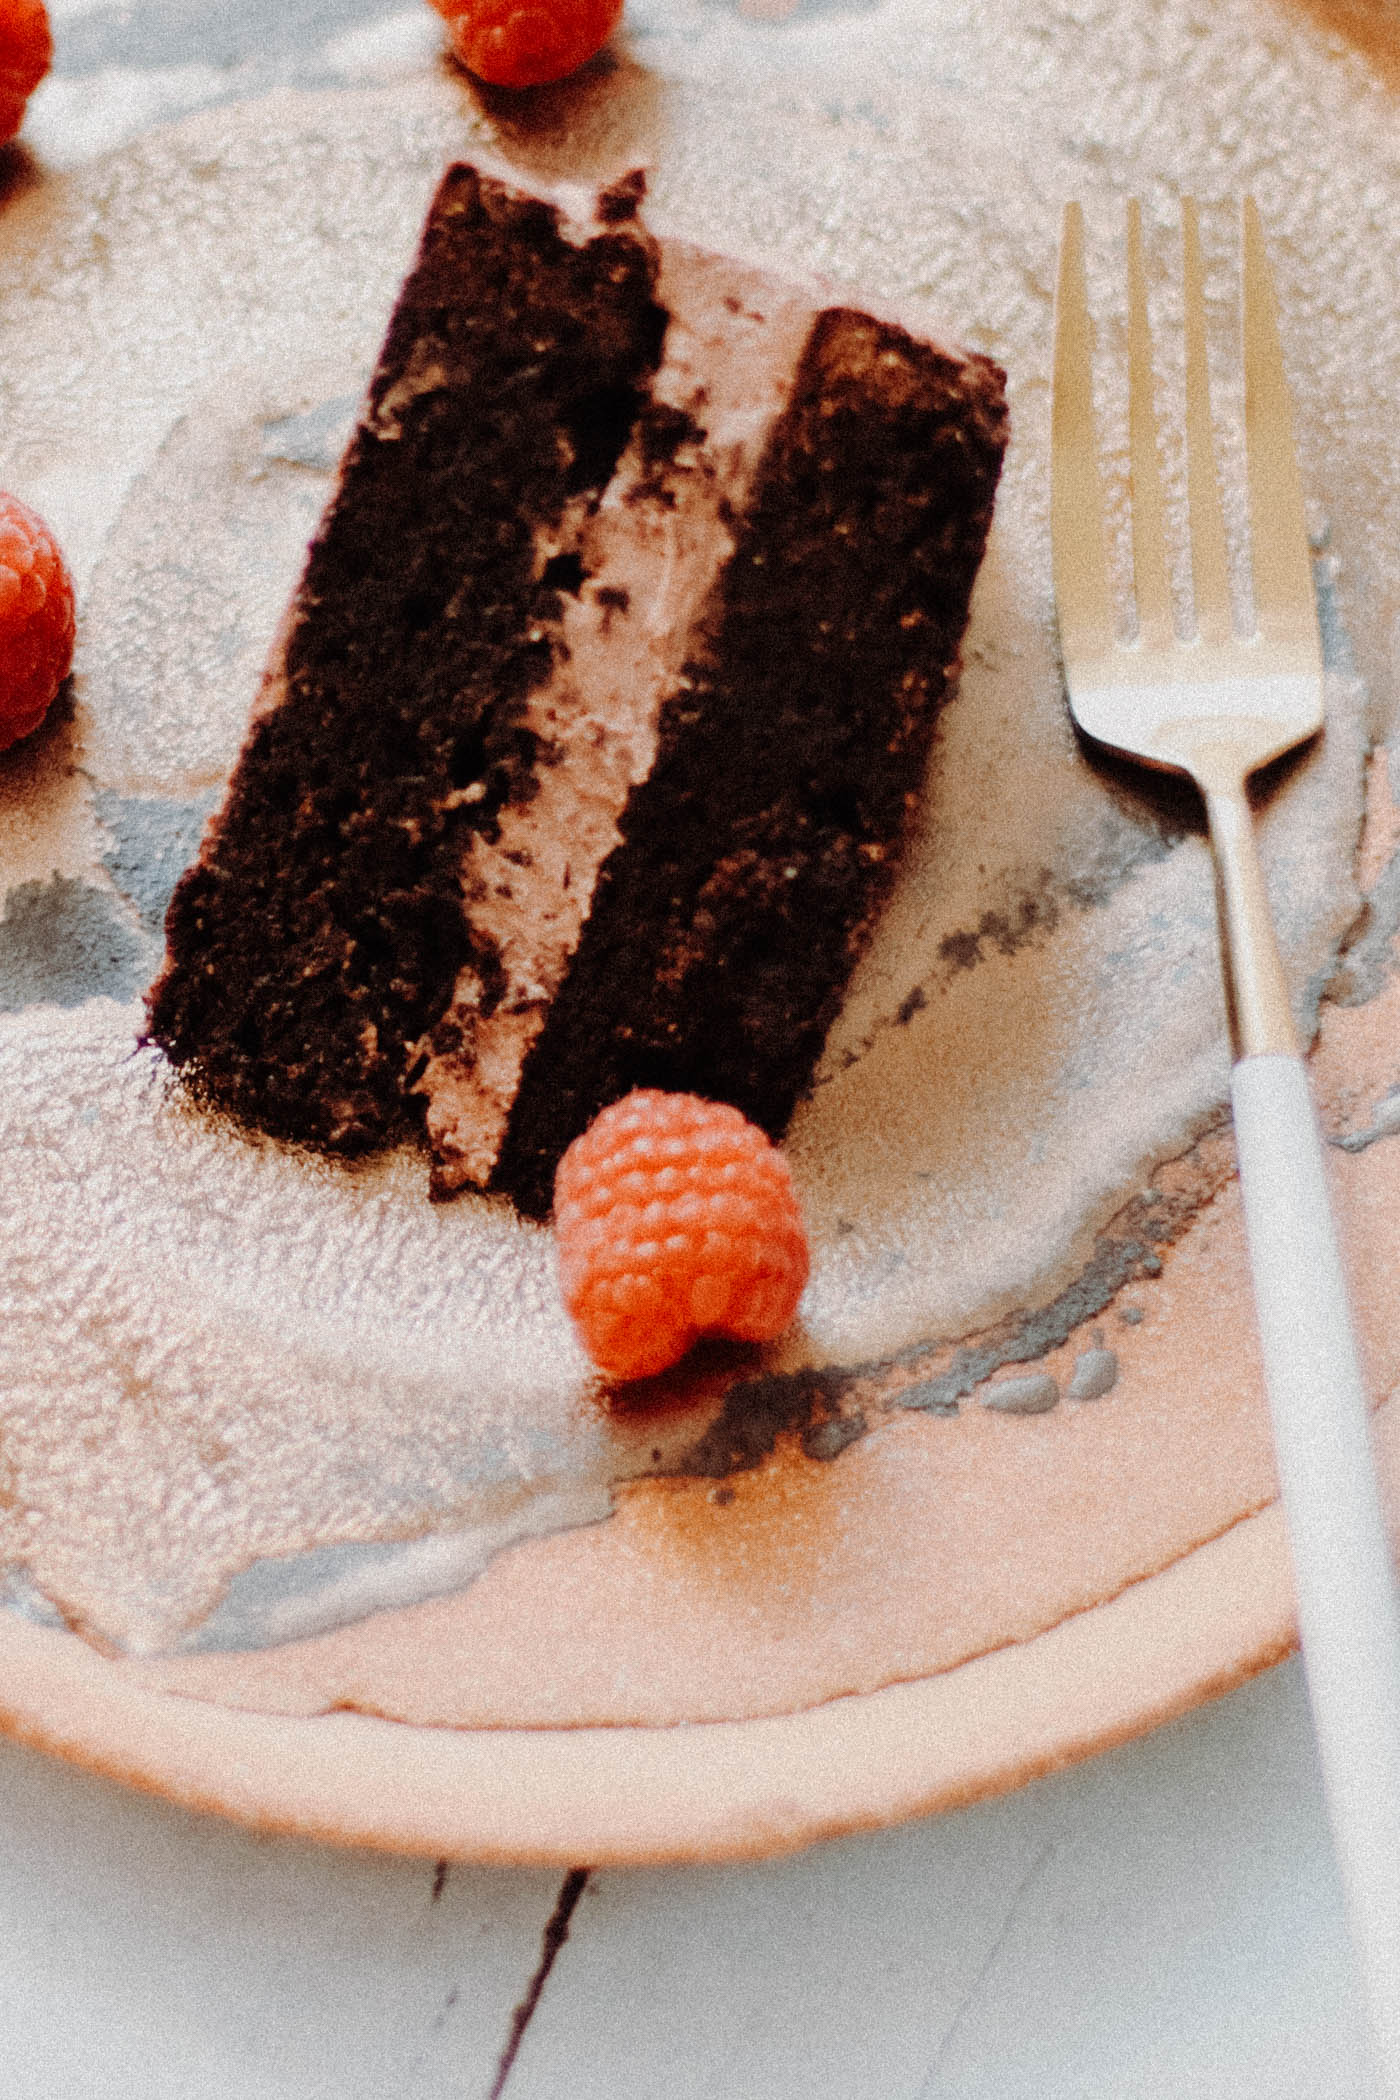 Paleo Keto Chocolate Mousse Cake - 9